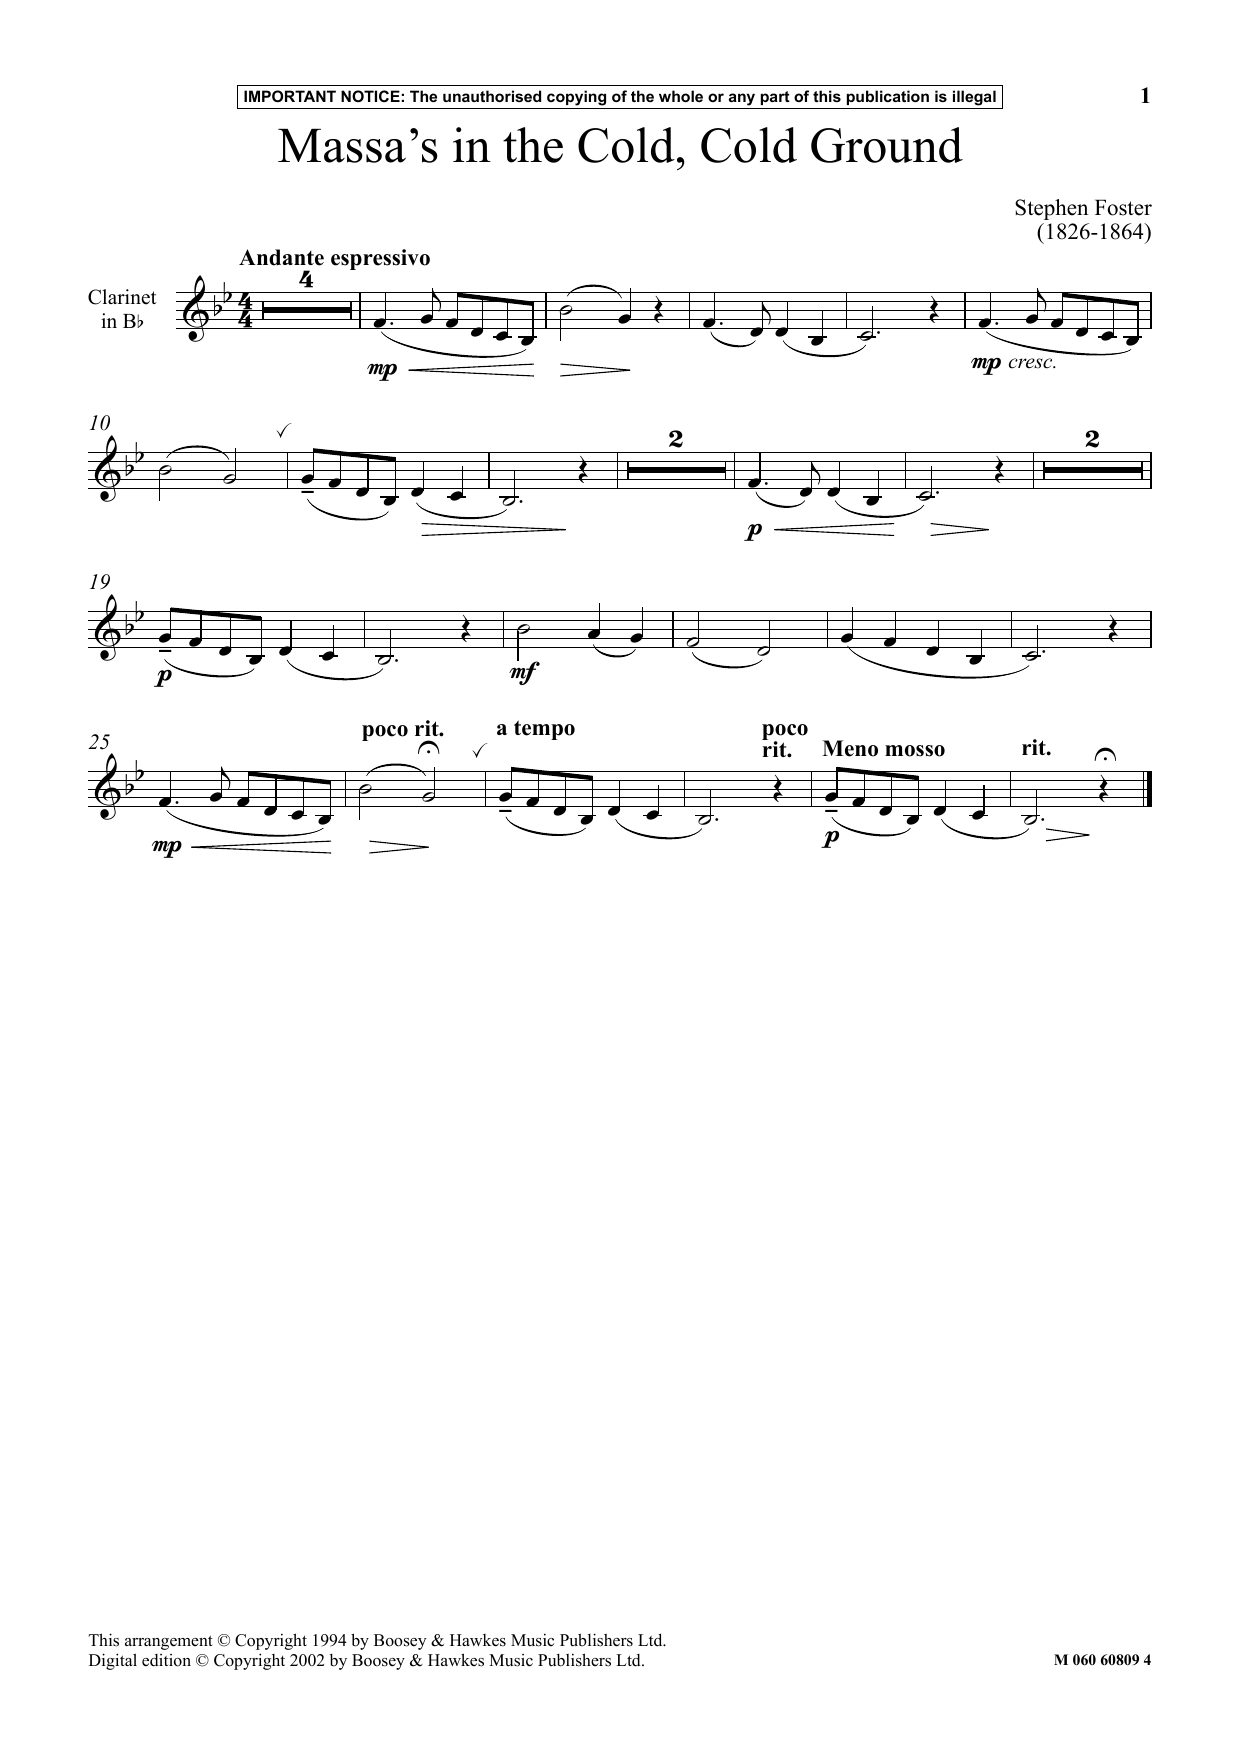 Stephen Foster Massa's In The Cold, Cold Ground sheet music notes and chords. Download Printable PDF.